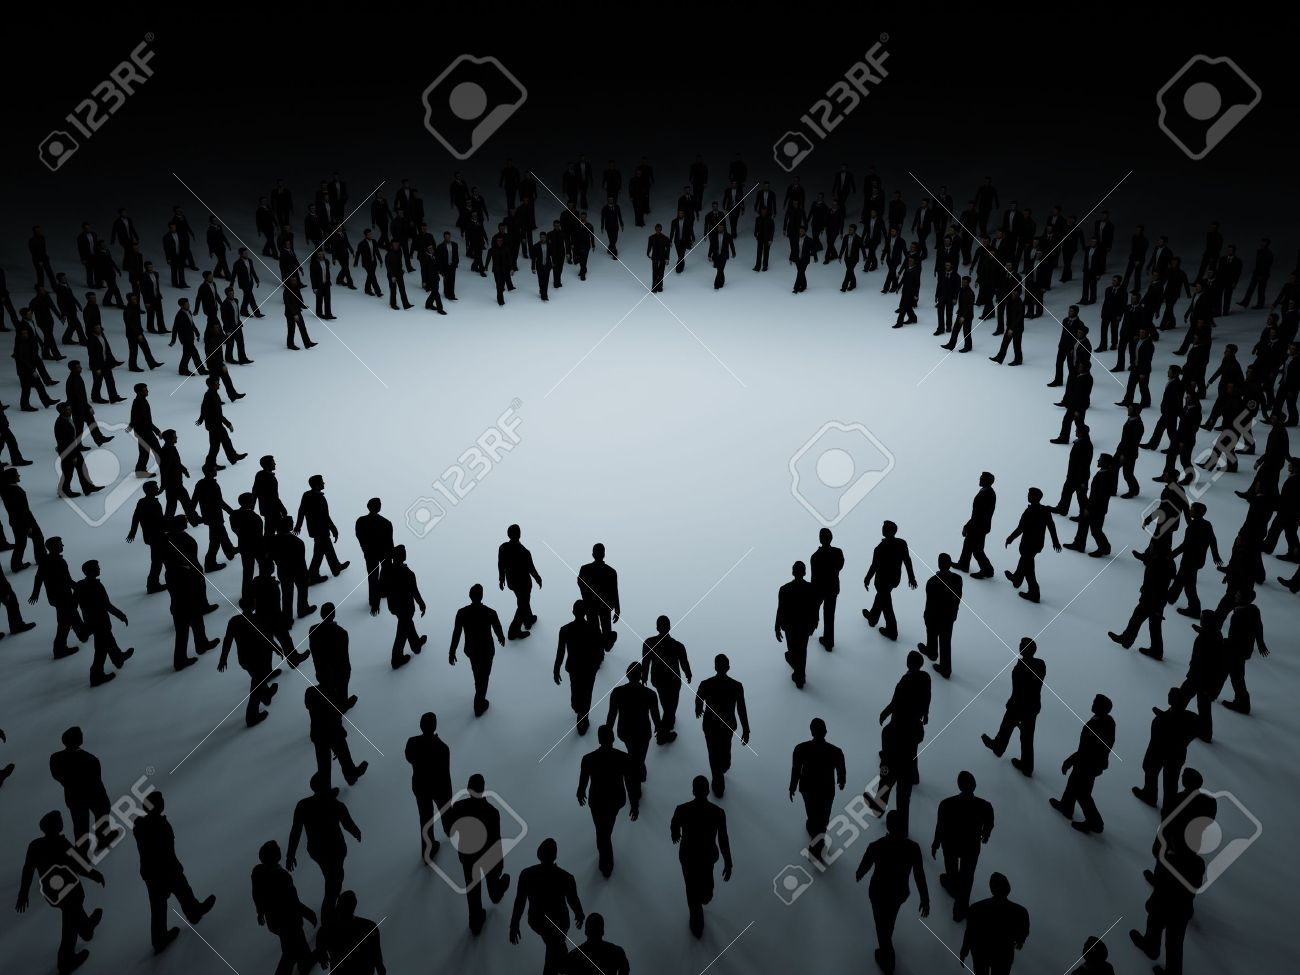 Large crowd of people - 16137390